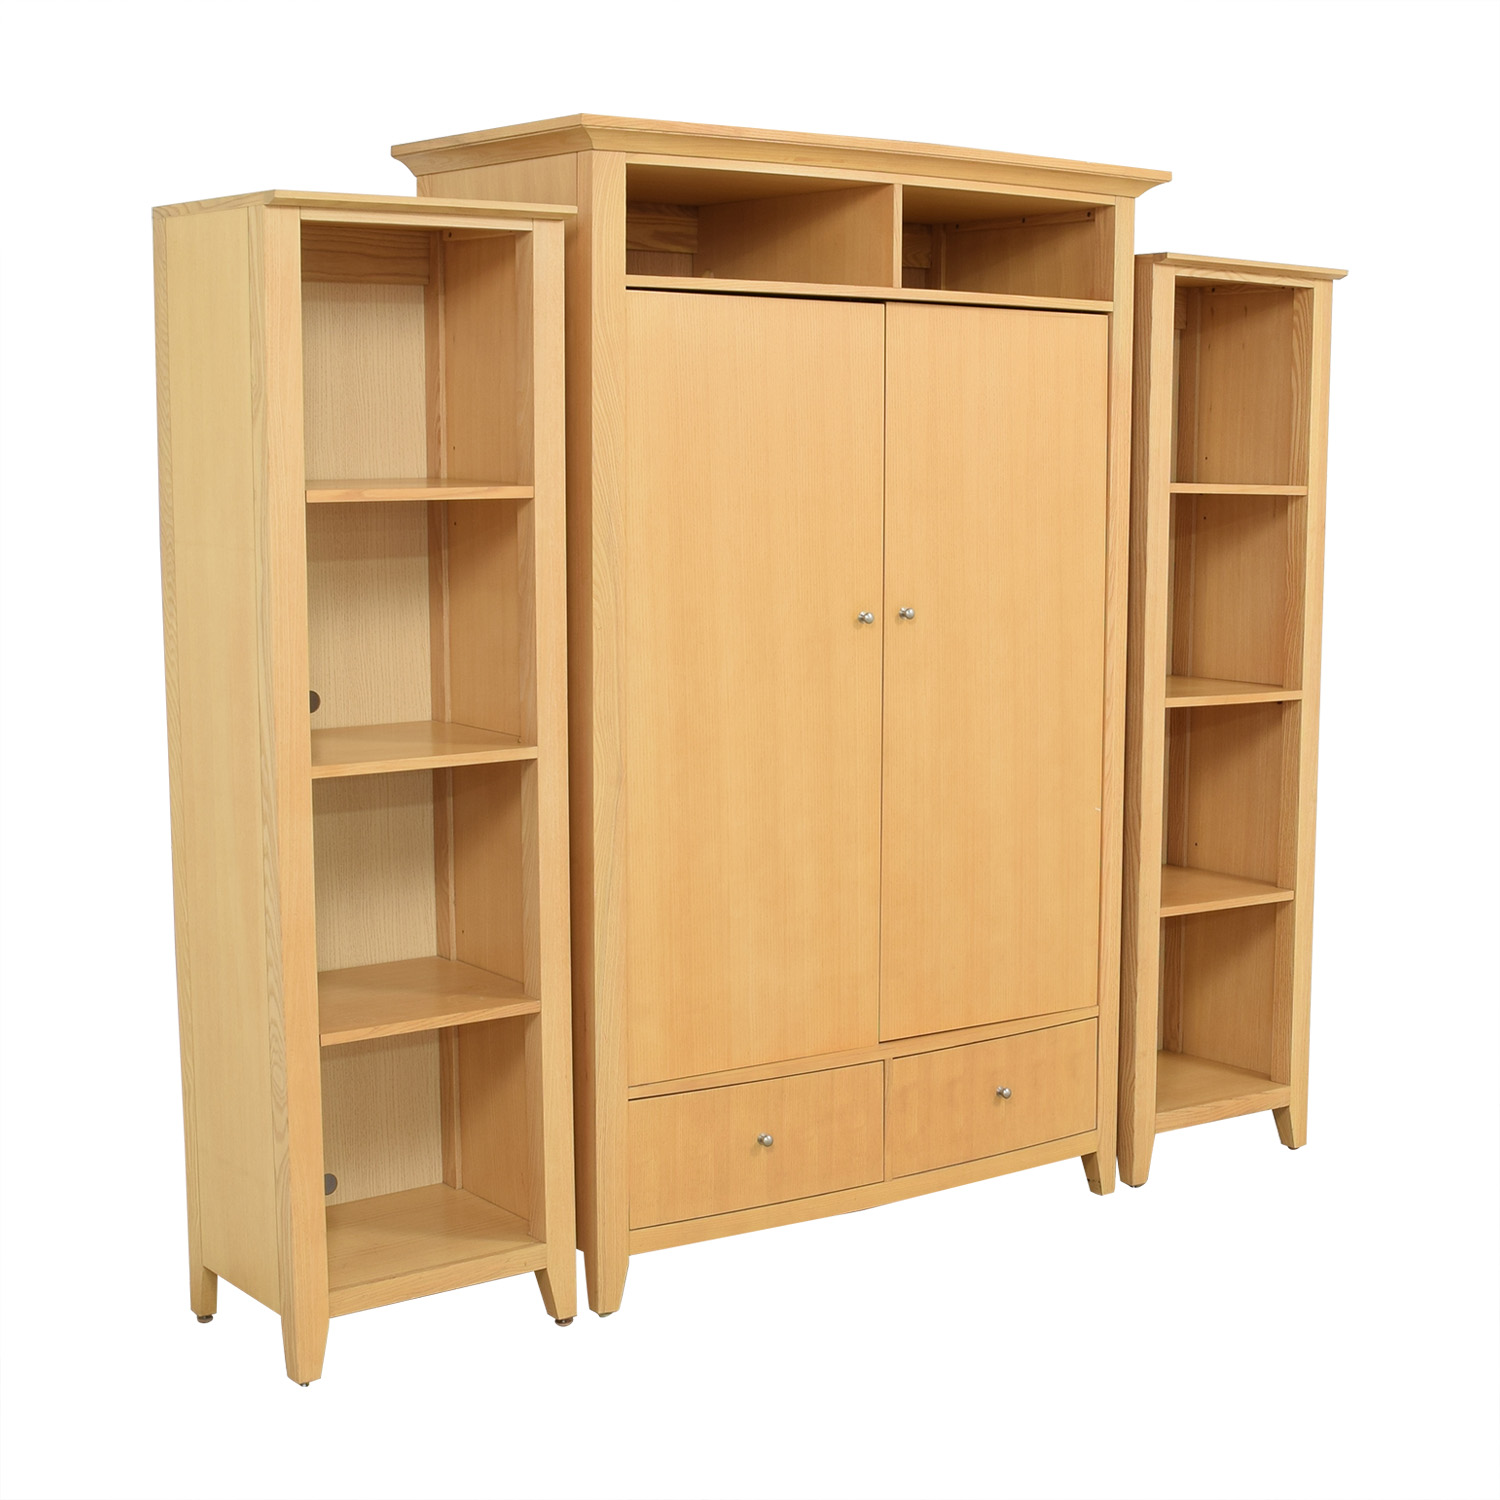 Thomasville Thomasville Armoire with Bookshelves for sale